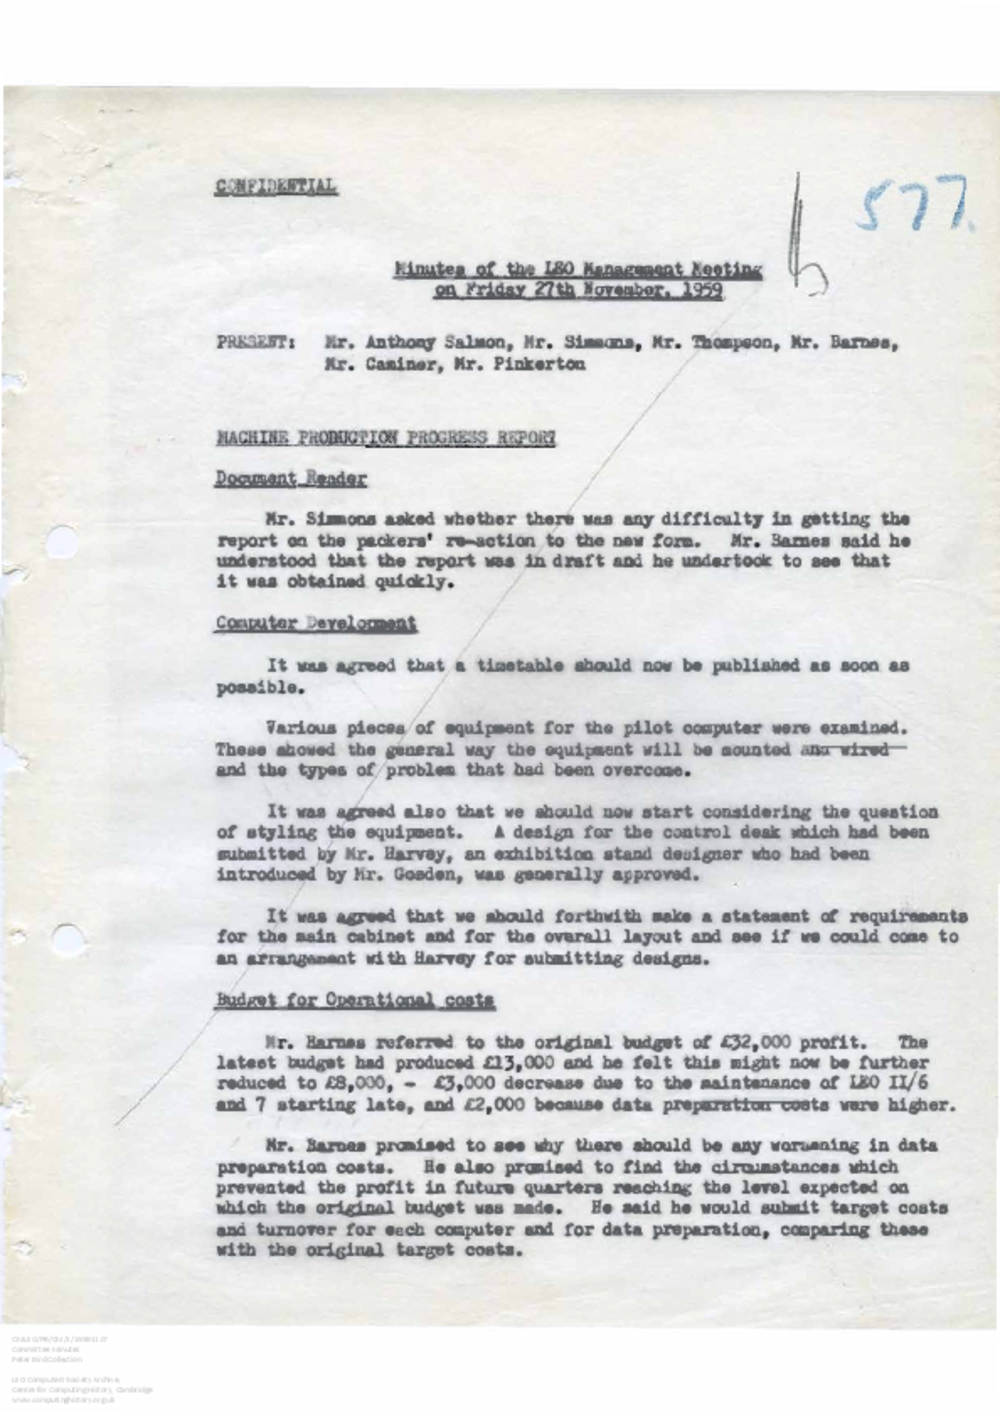 Article: 56052 LEO Management Meeting, 27/11/1959